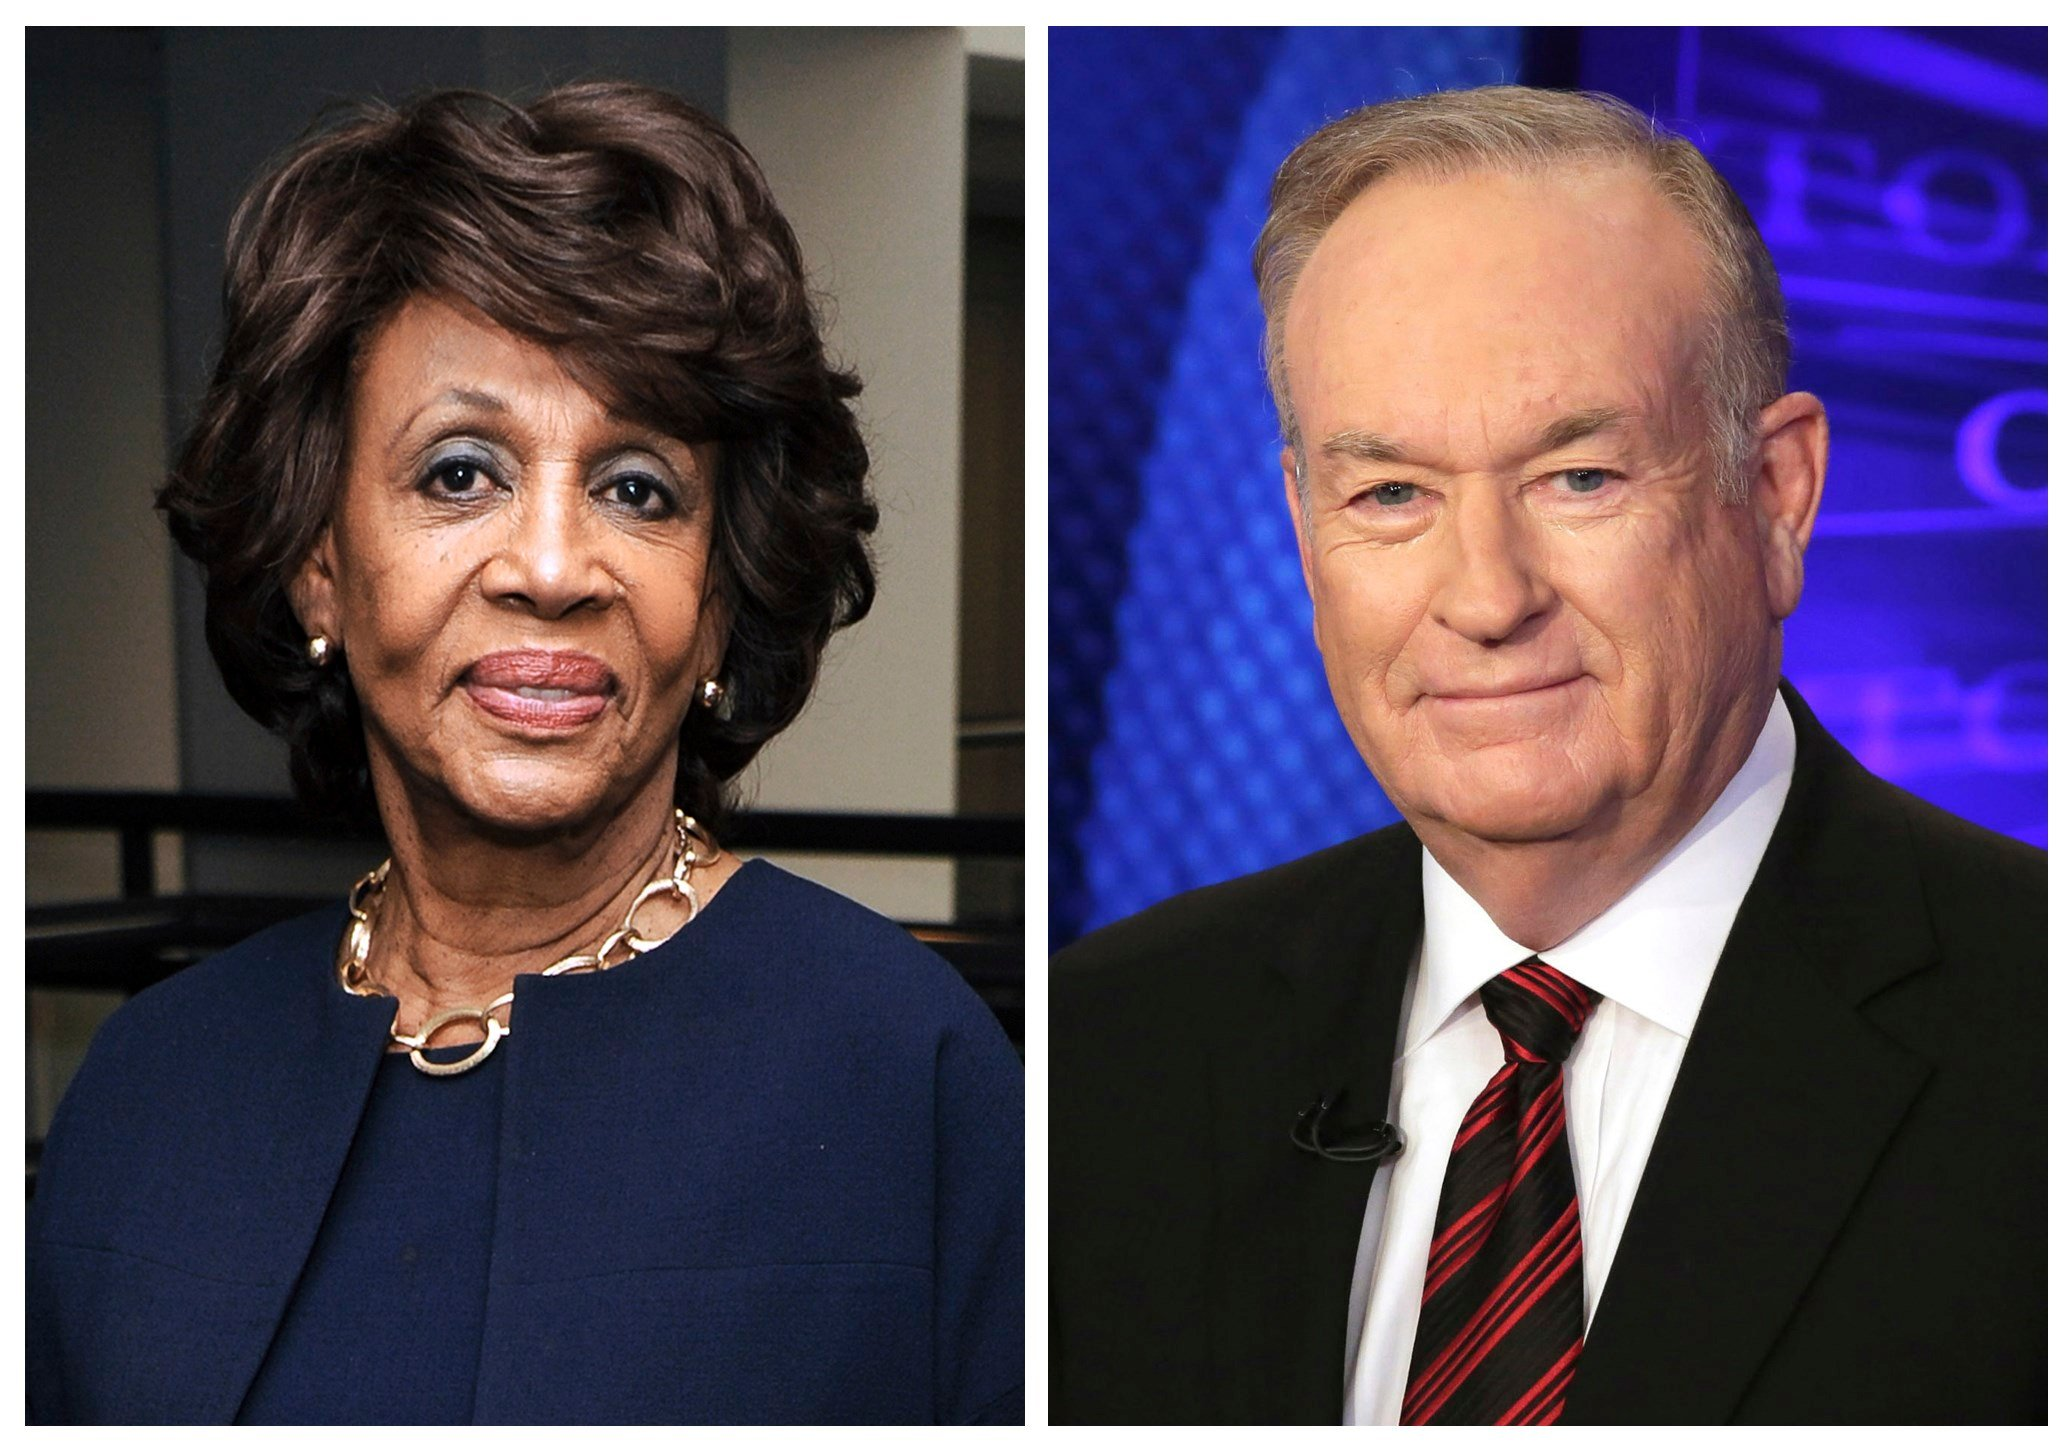 """Rep. Maxine Waters, D-Calif., left, appears at the Justice on Trial Film Festival in 2013, and Fox News personality Bill O'Reilly appears on the set of his show, """"The O'Reilly Factor,"""" in 2015. (AP Photos/Richard Shotwell, left, and Richard Drew)"""